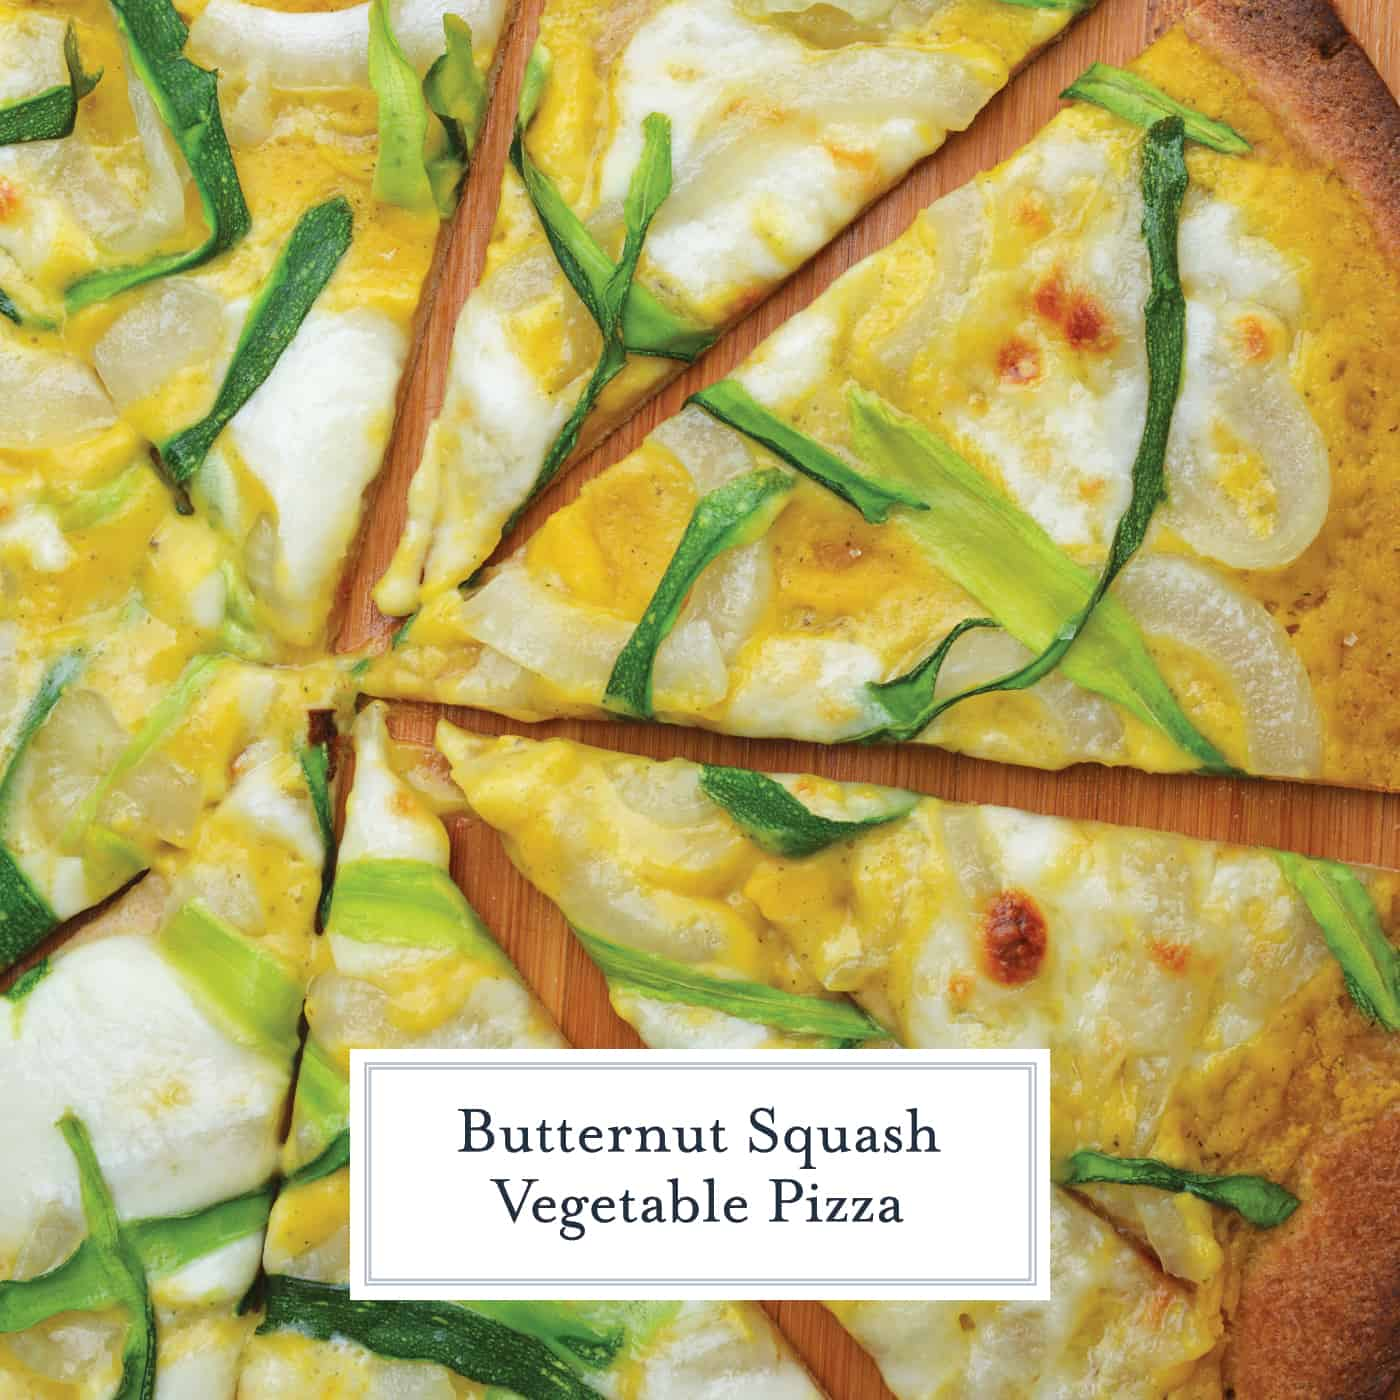 Butternut Squash Vegetable Pizza is an easy homemade pizza recipe!  If you're looking for a recipe to switch it up, this is the recipe for you! #vegetablepizza #cauliflowerpizzacrust #butternutsquashrecipes www.savoryexperiments.com